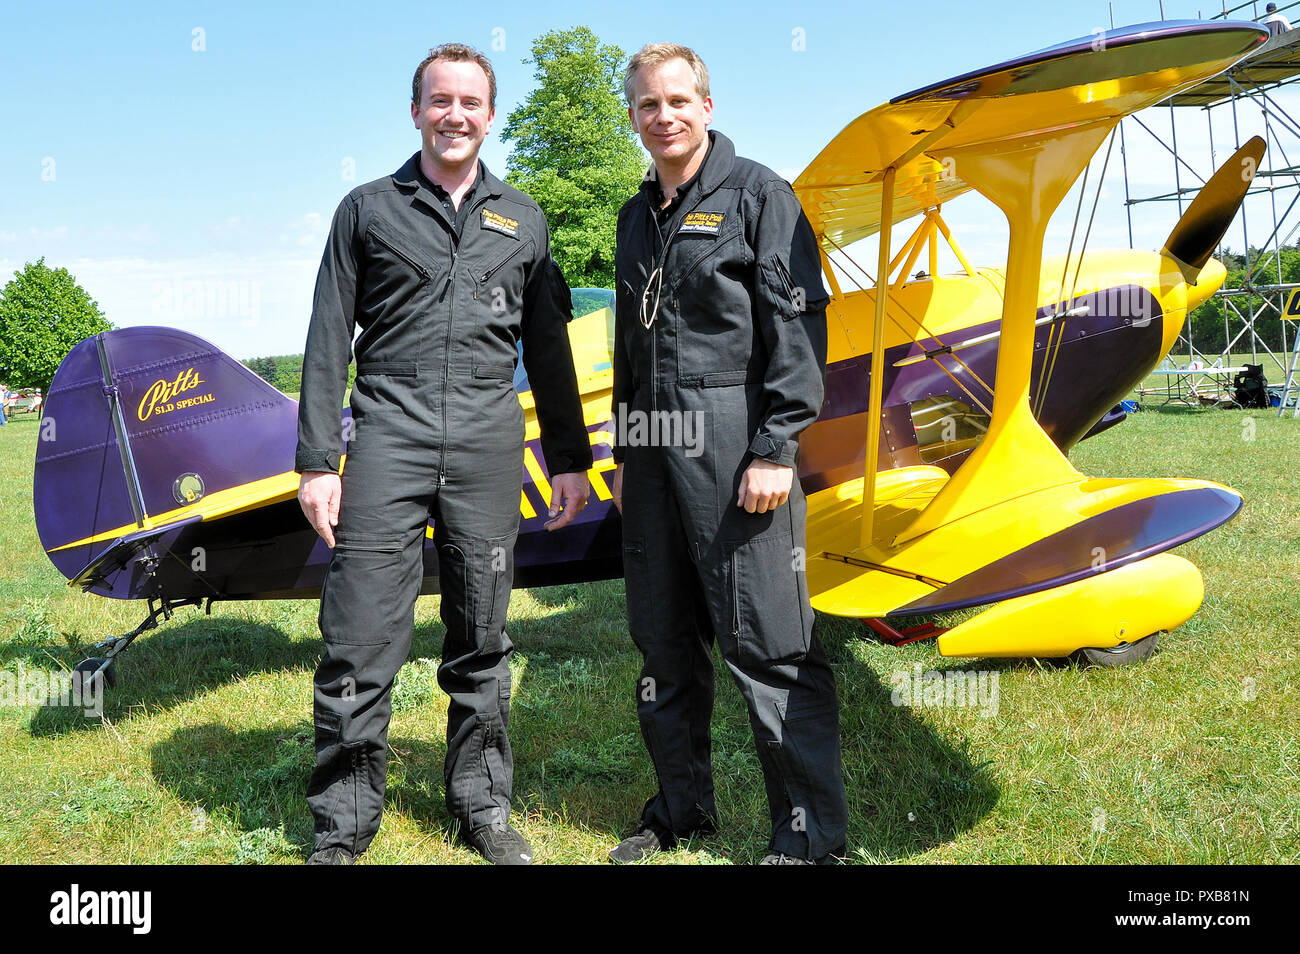 Richard Grace and Dave Puleston, pilots of The Pitts Pair Trig Aerobatic Team at Henham Park, Suffolk, UK, for an airshow. - Stock Image